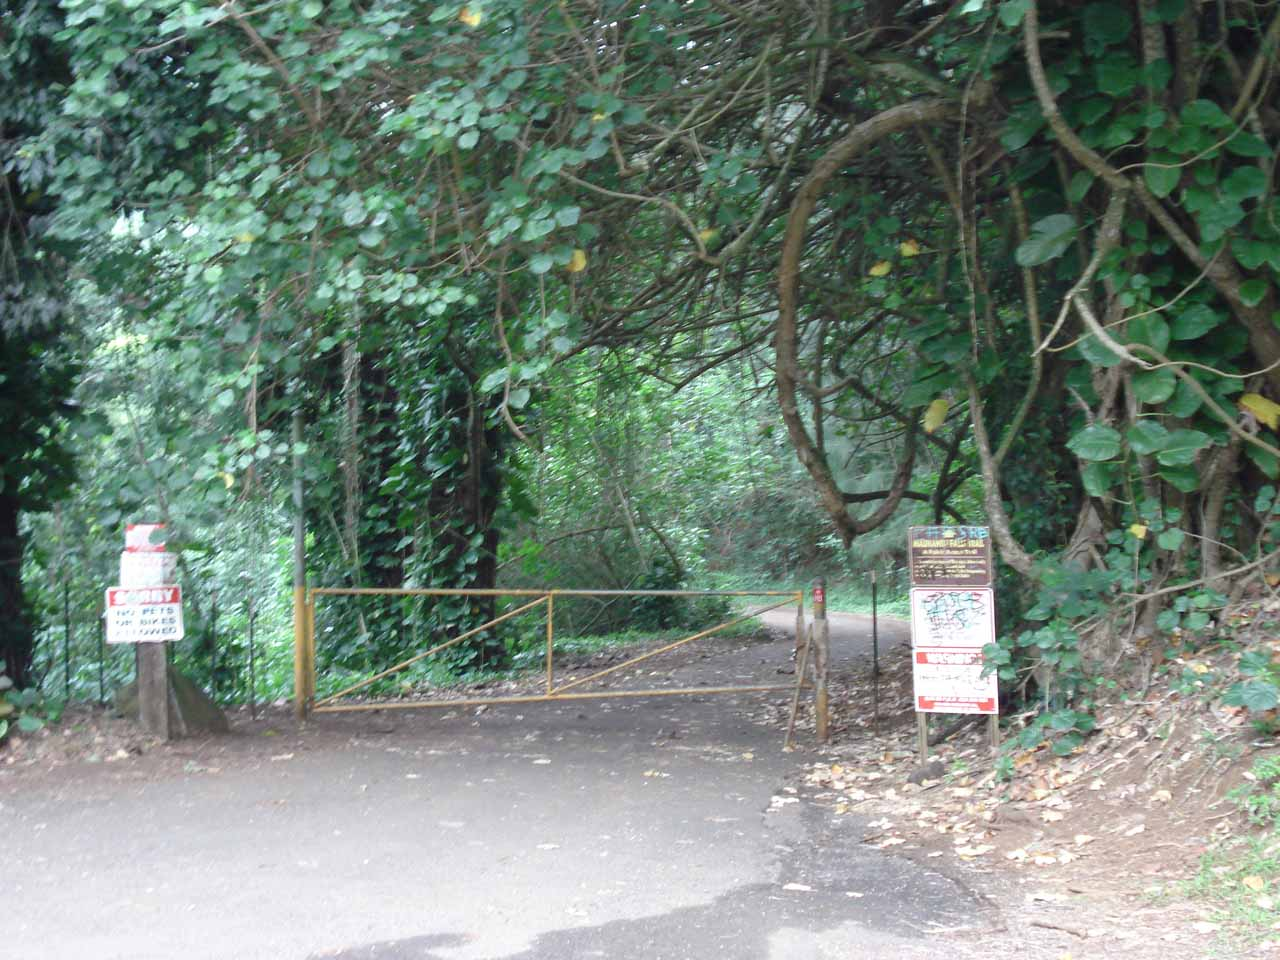 The trail is behind that gate